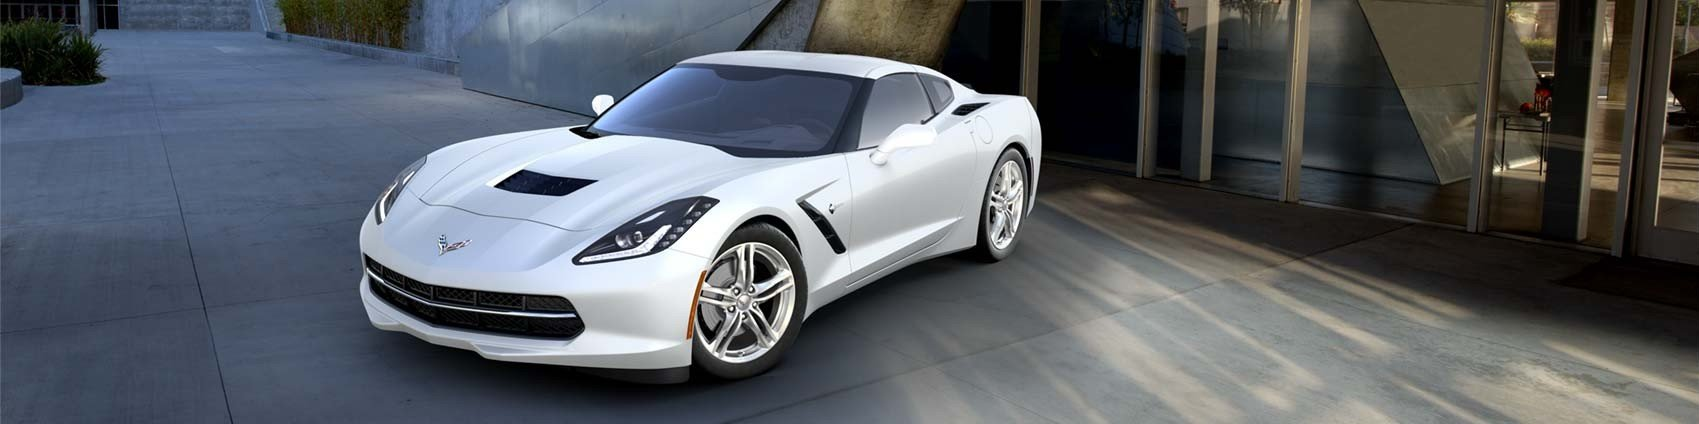 new white chevrolet corvette